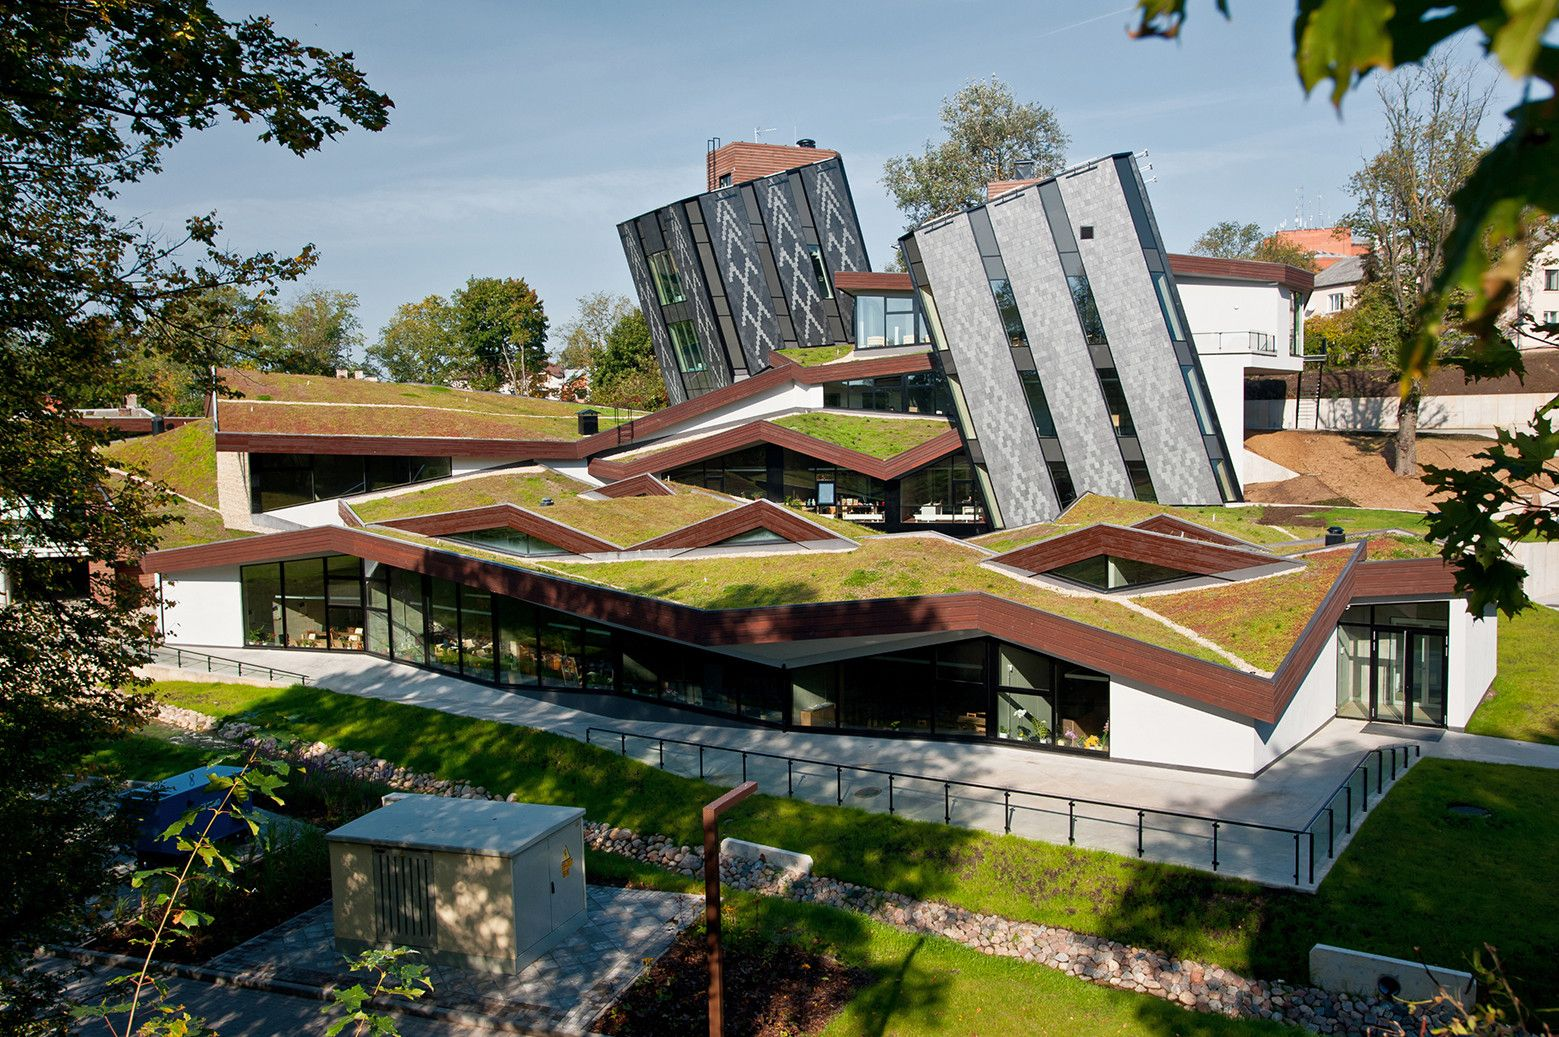 Gallery Zeimuls Centre Of Creative Services Of Eastern Latvia Saals Architecture 1 Architecture Green Roof Roof Architecture